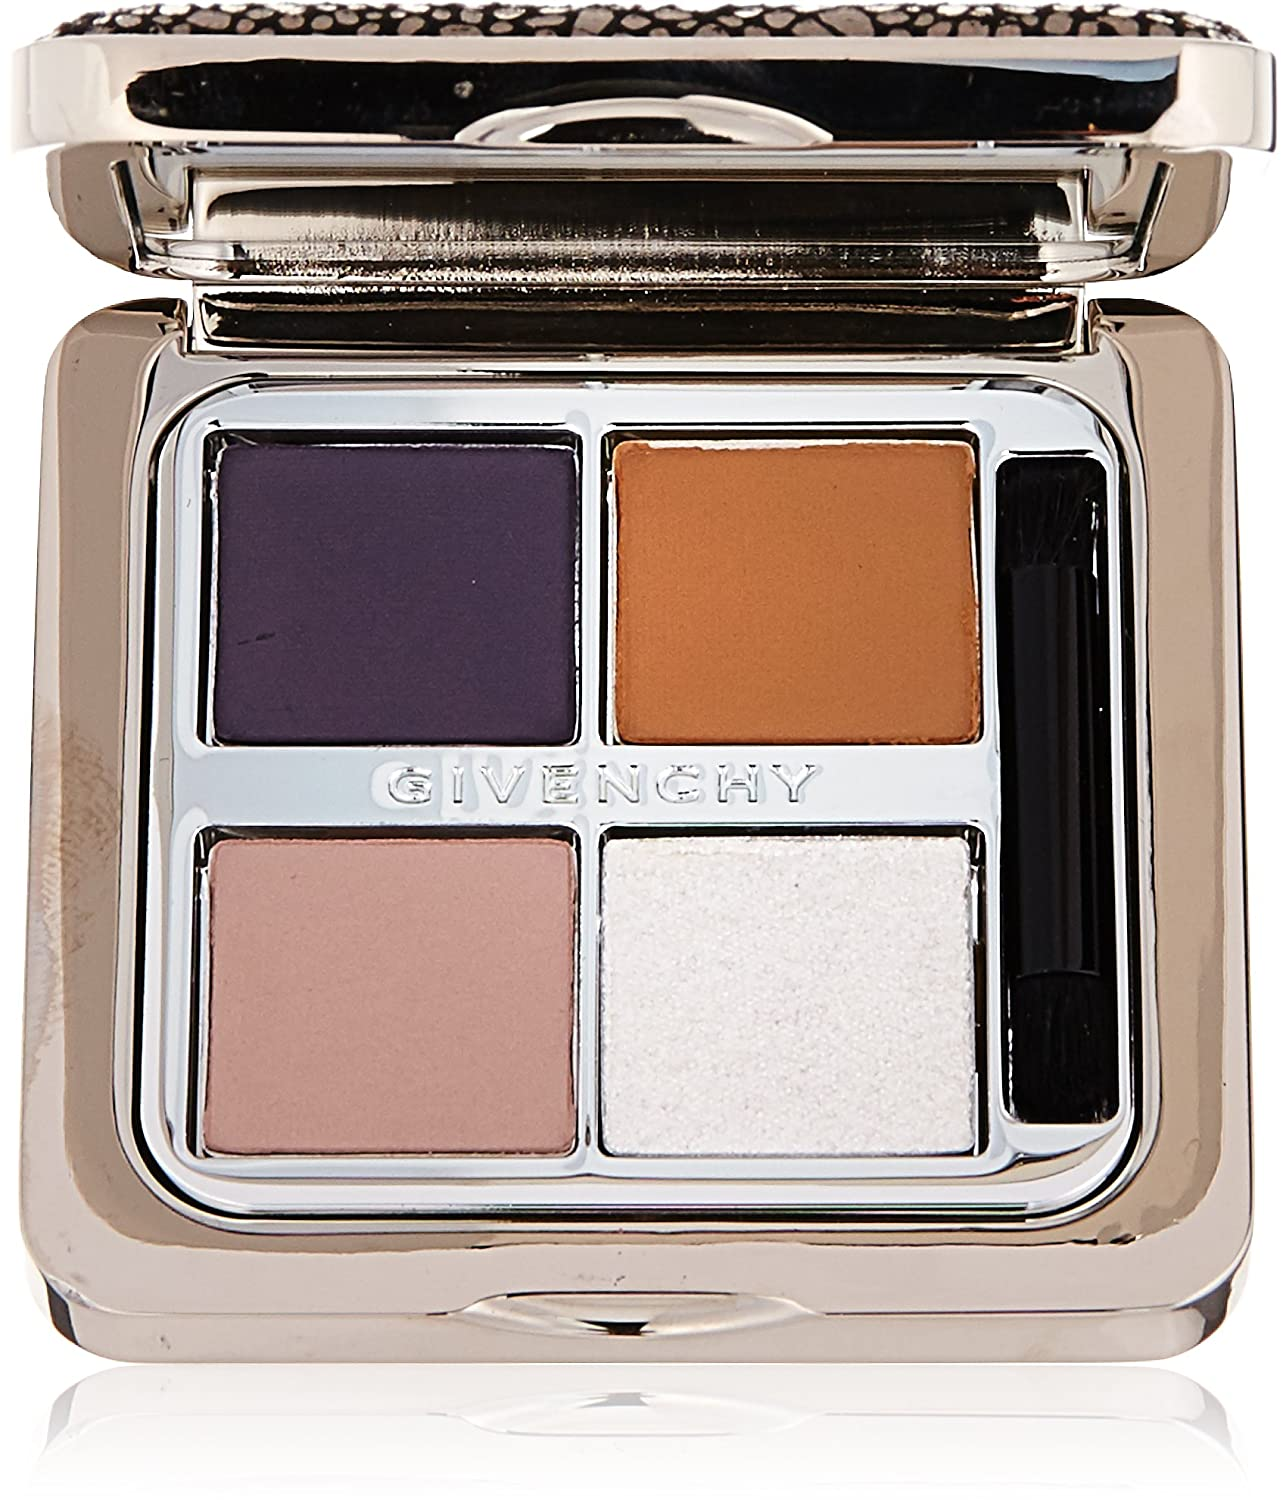 Givenchy Ecrin Du Soir Matte & Sequined Eye Shadows Limited Edition Harmonie D'Exception